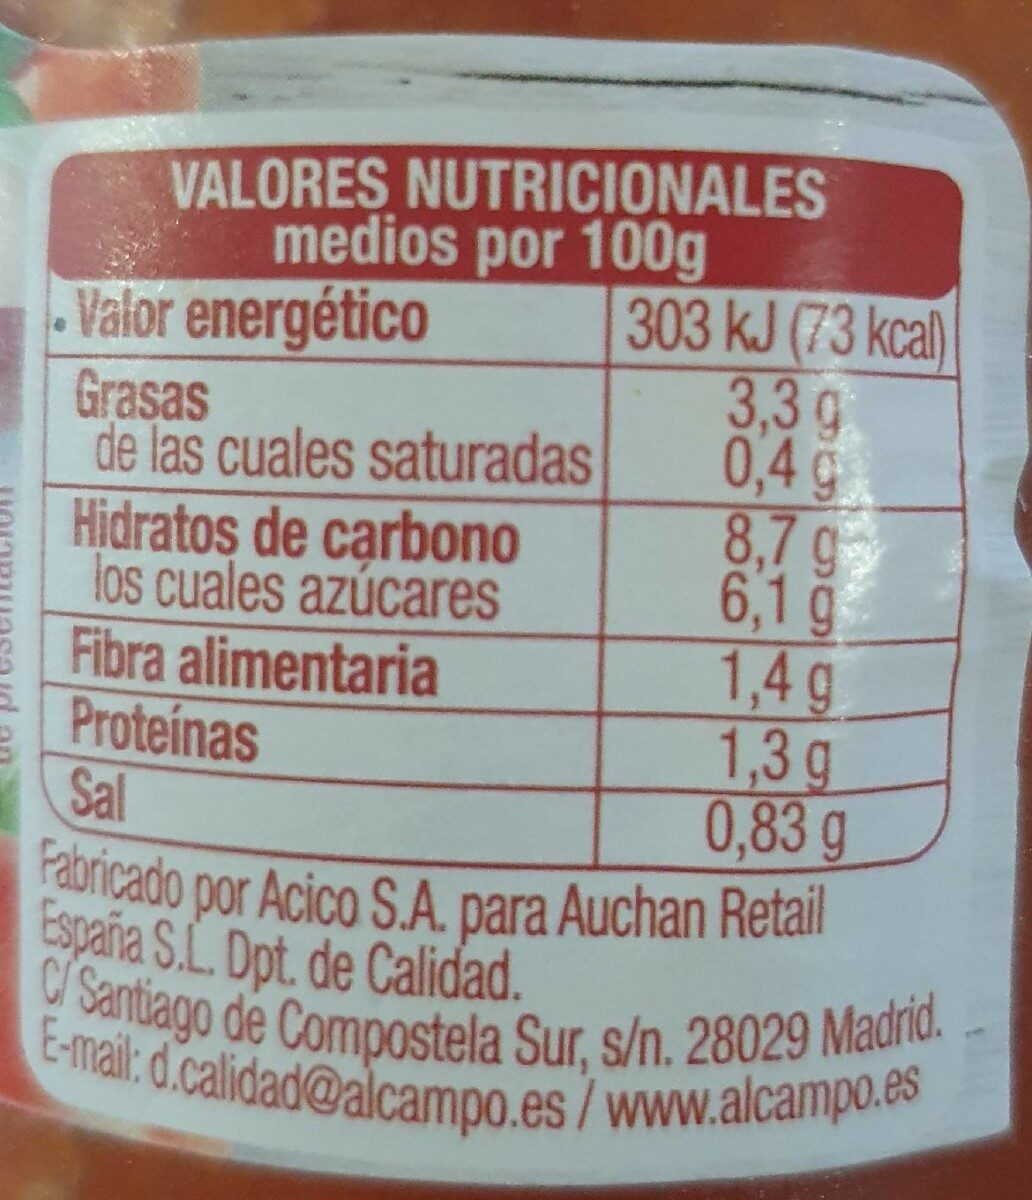 Tomate frito sans gluten - Informations nutritionnelles - fr